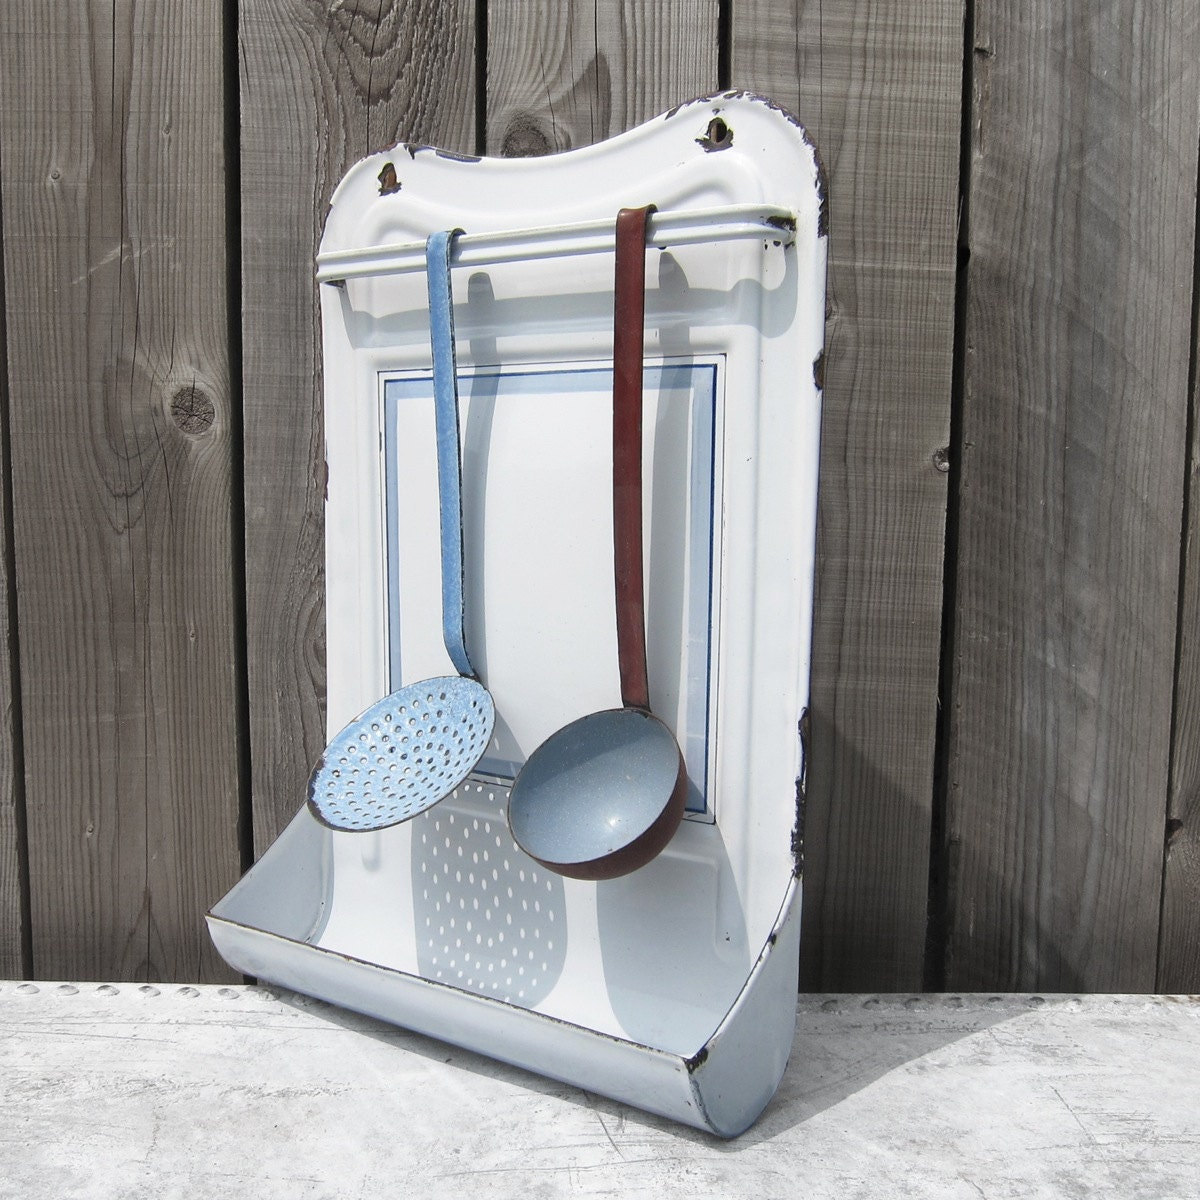 1950s Baby Blue White Metal Enamel Kitchen Utensil Rack Wall Holder ; Fabulous Kitchen Accessory - MagpiesVintageShop